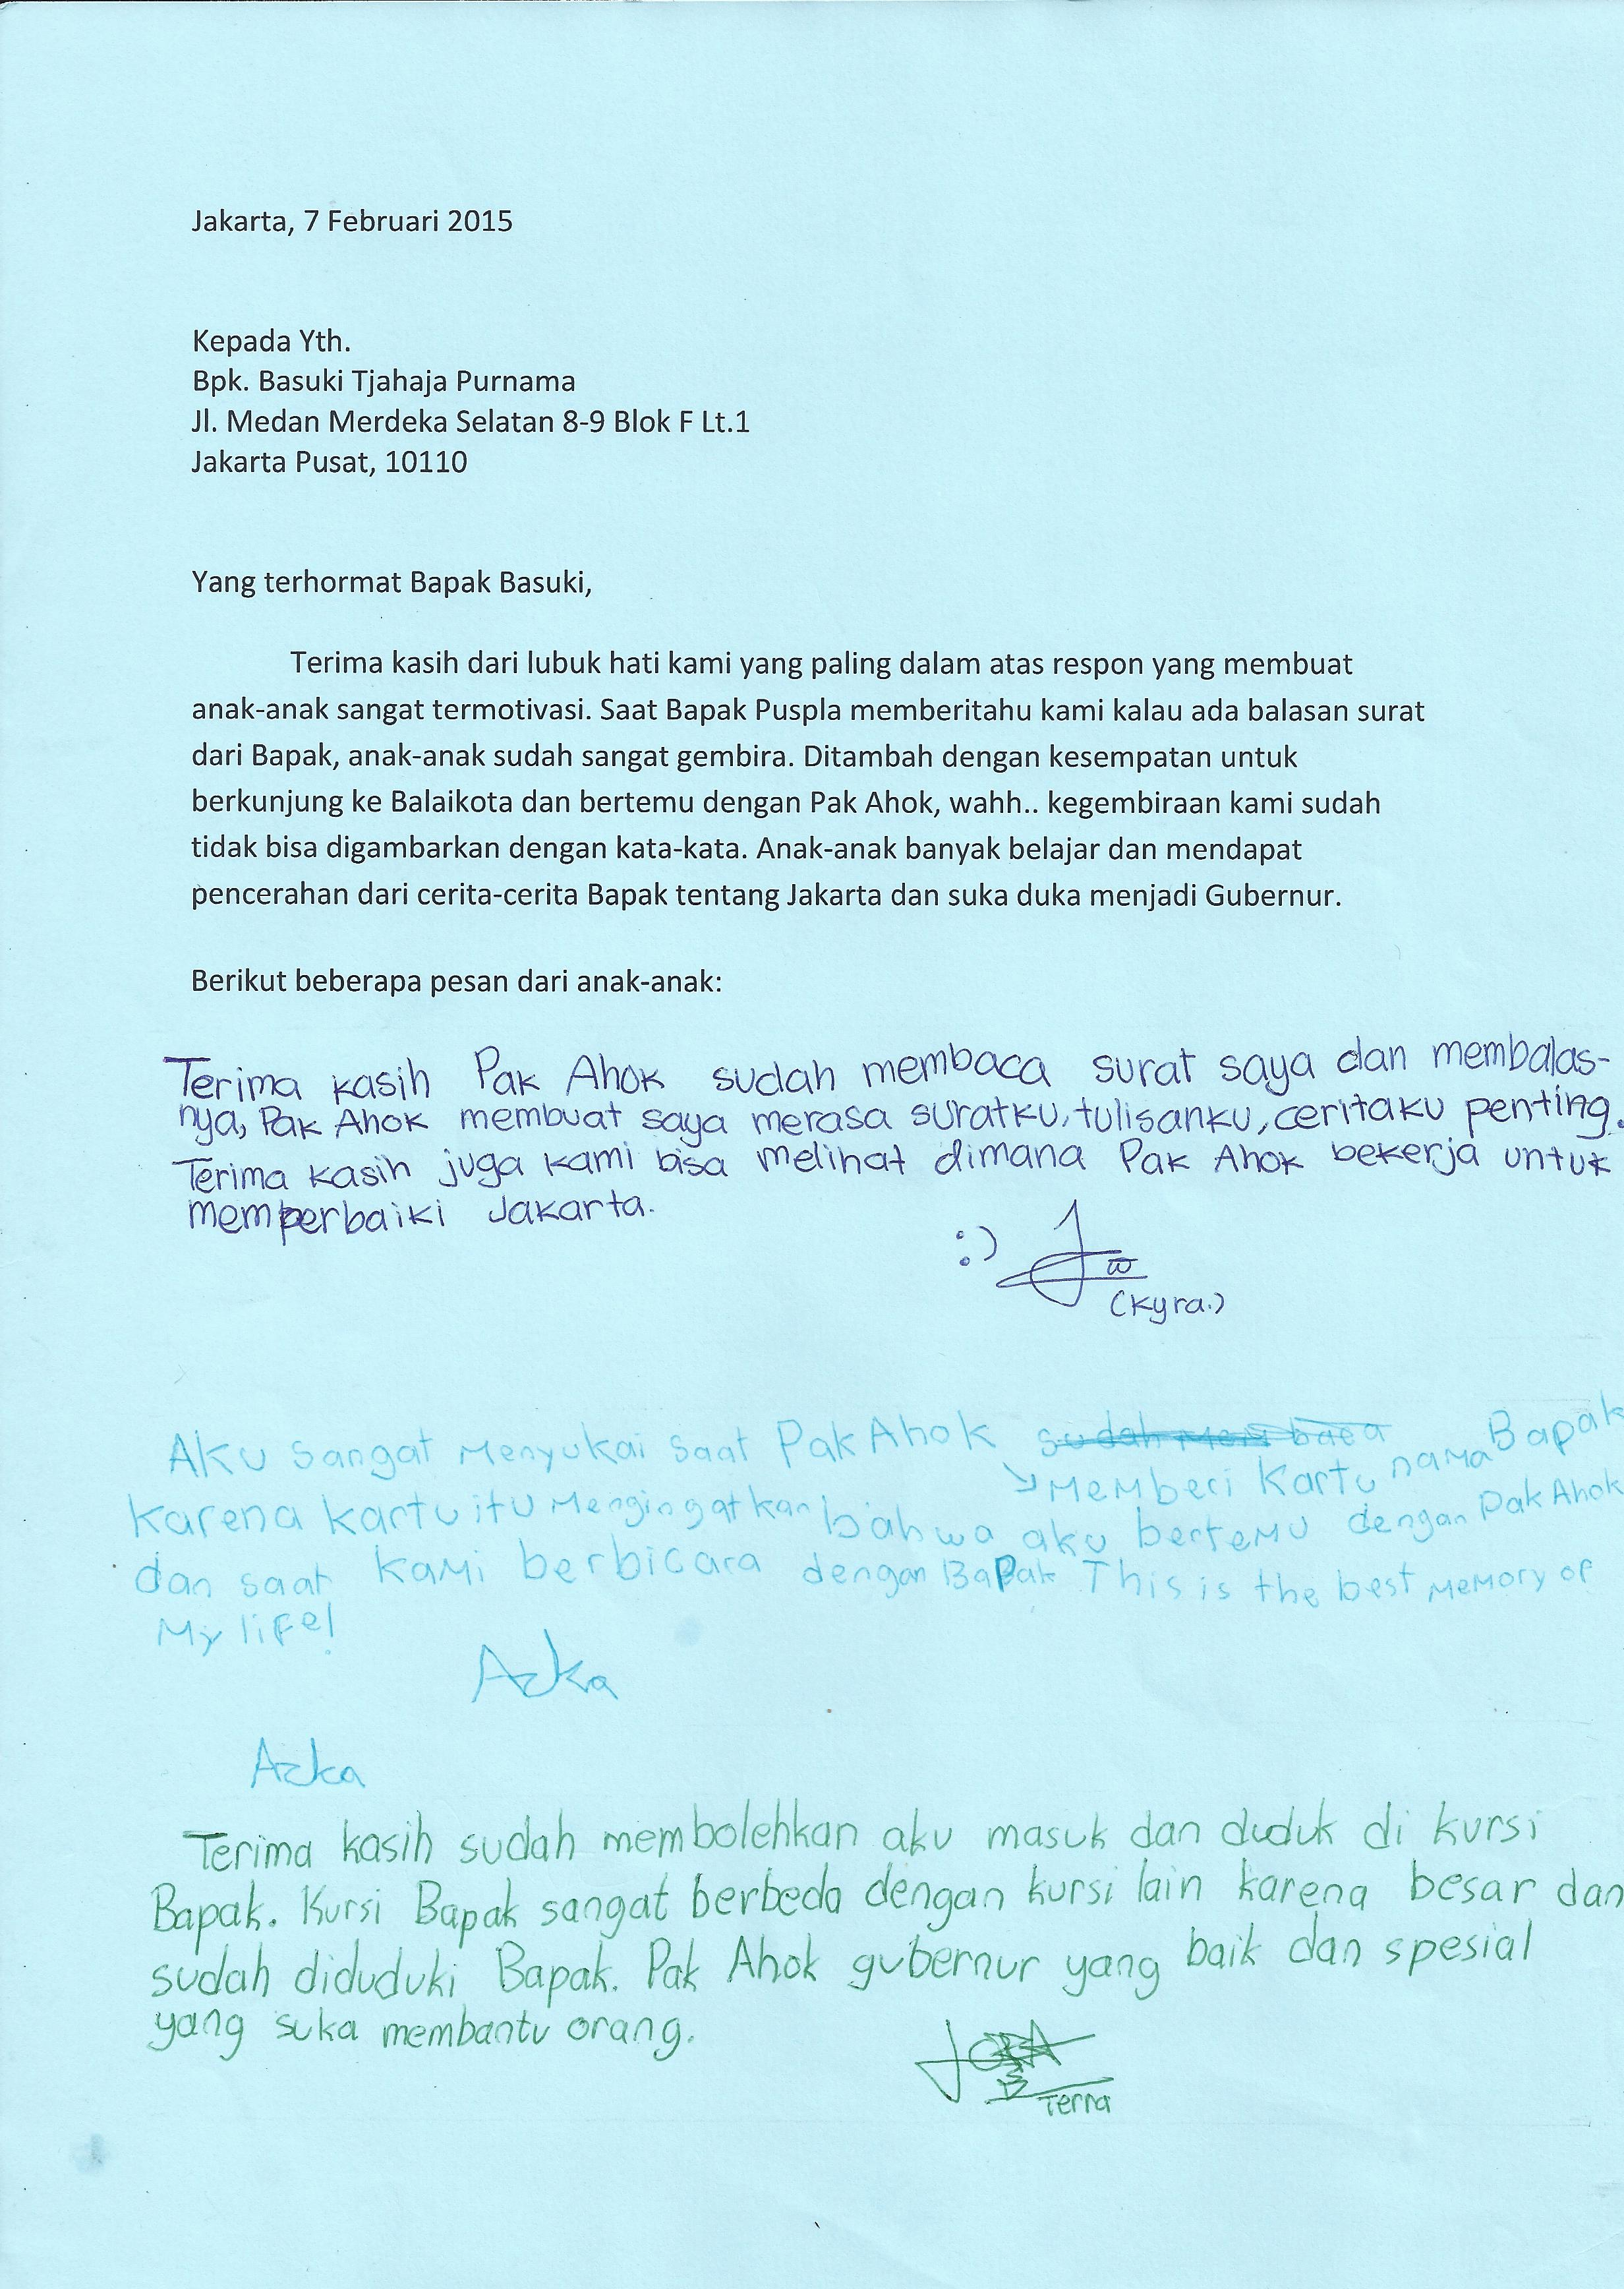 3-Thank you Letter to Pak Ahok_Page_1